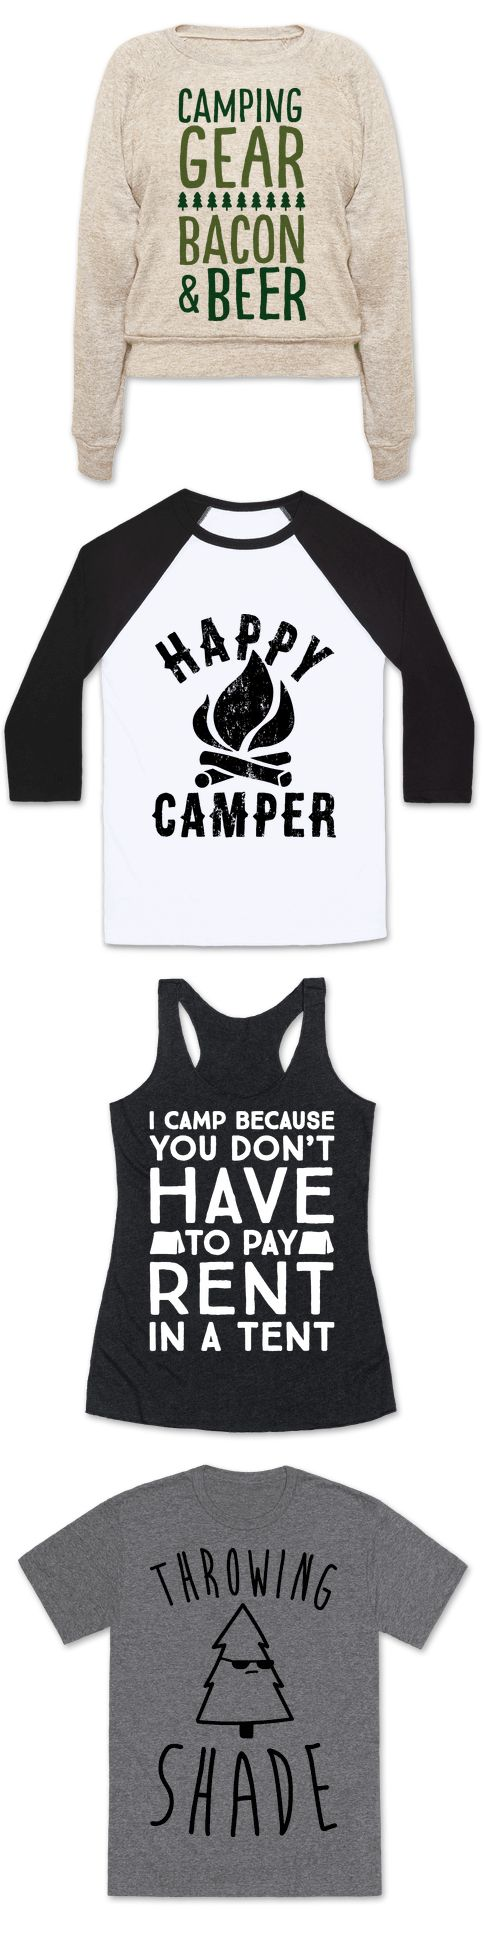 This awesome camping collection is perfect for nature lovers, hikers, explorers, road trippers, and anyone who loves the great outdoors!